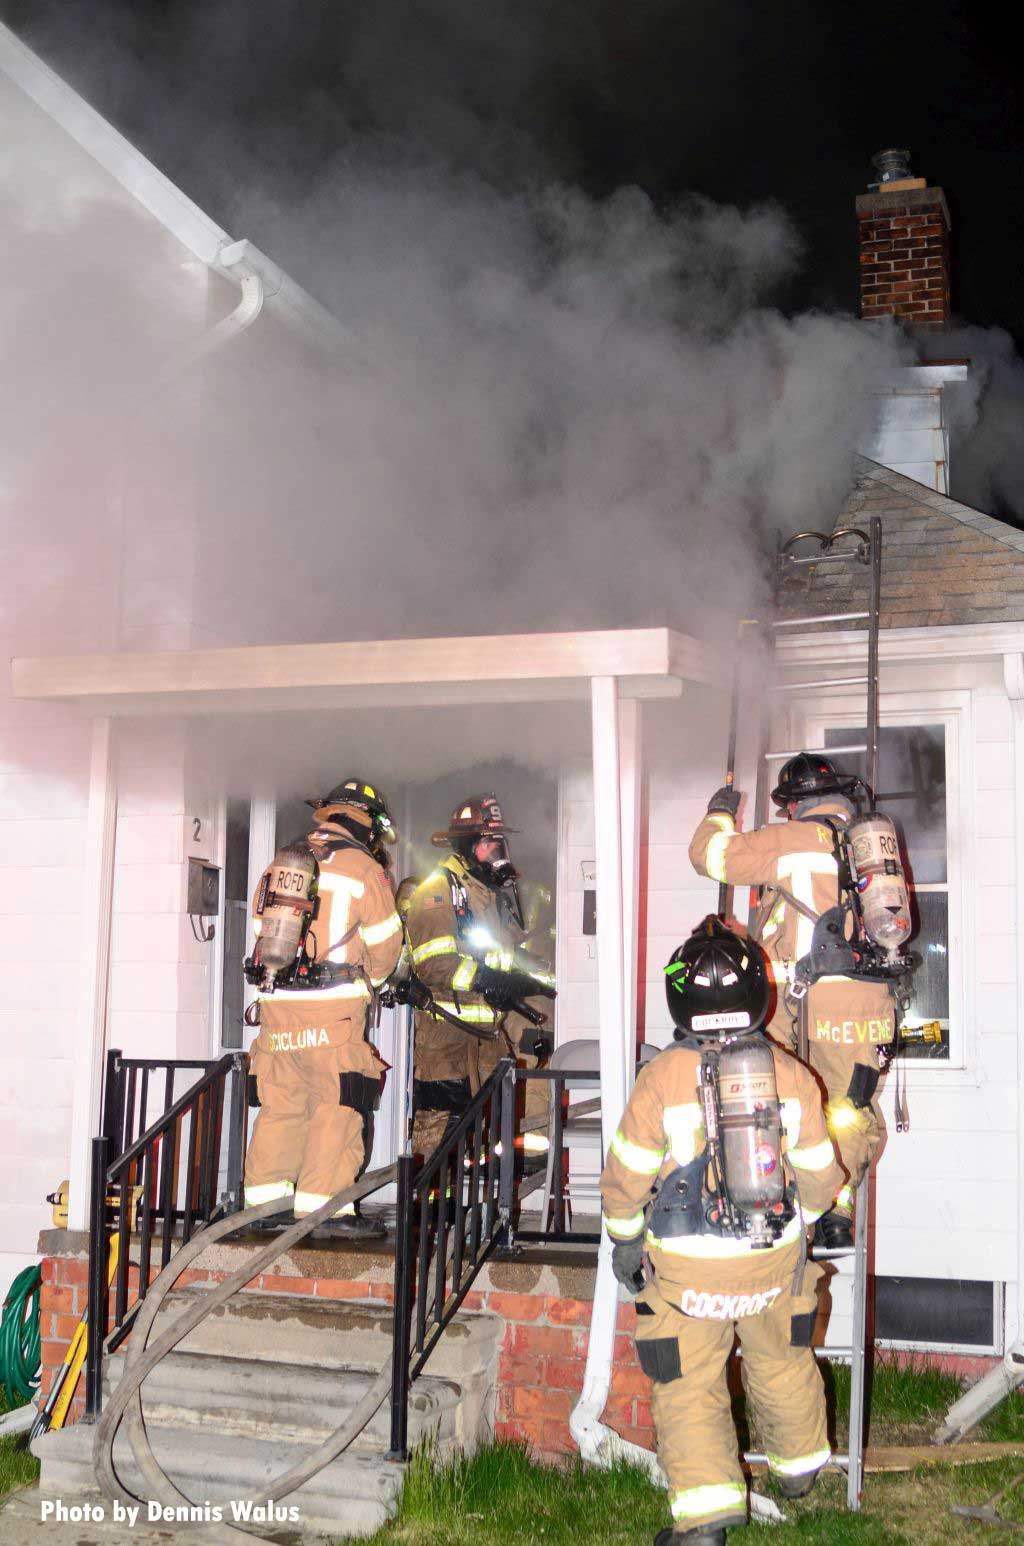 Firefighters at the door during a house fire with smoke